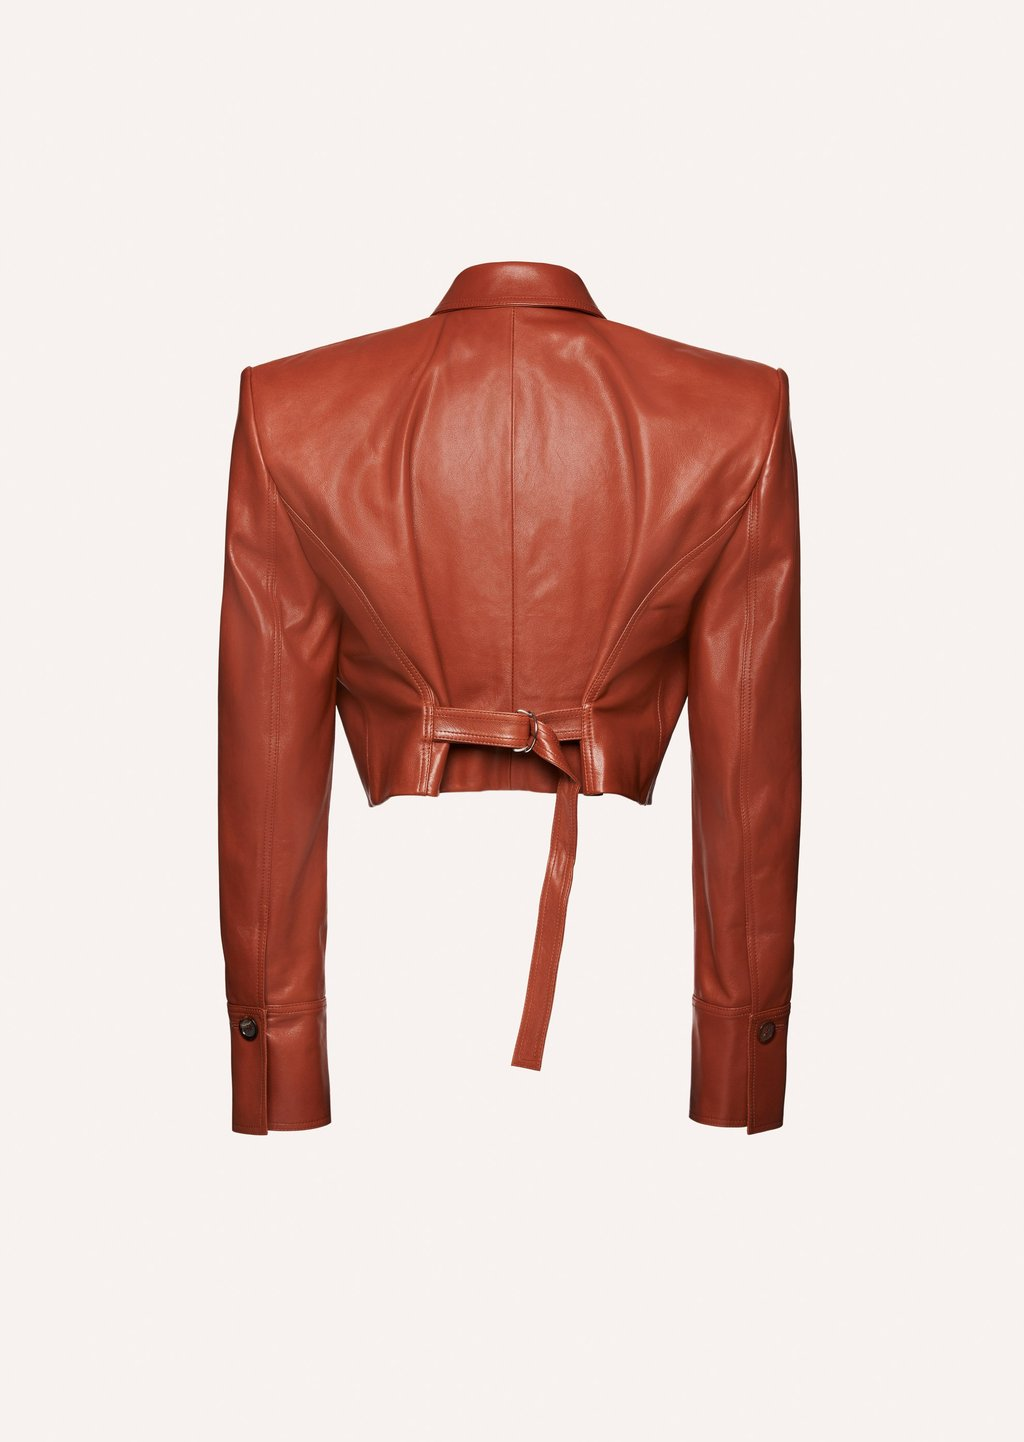 Sharp shoulder cropped leather jacket in brown by Magda Butrym, available on magdabutrym.com for EUR1860 Hailey Baldwin Outerwear Exact Product